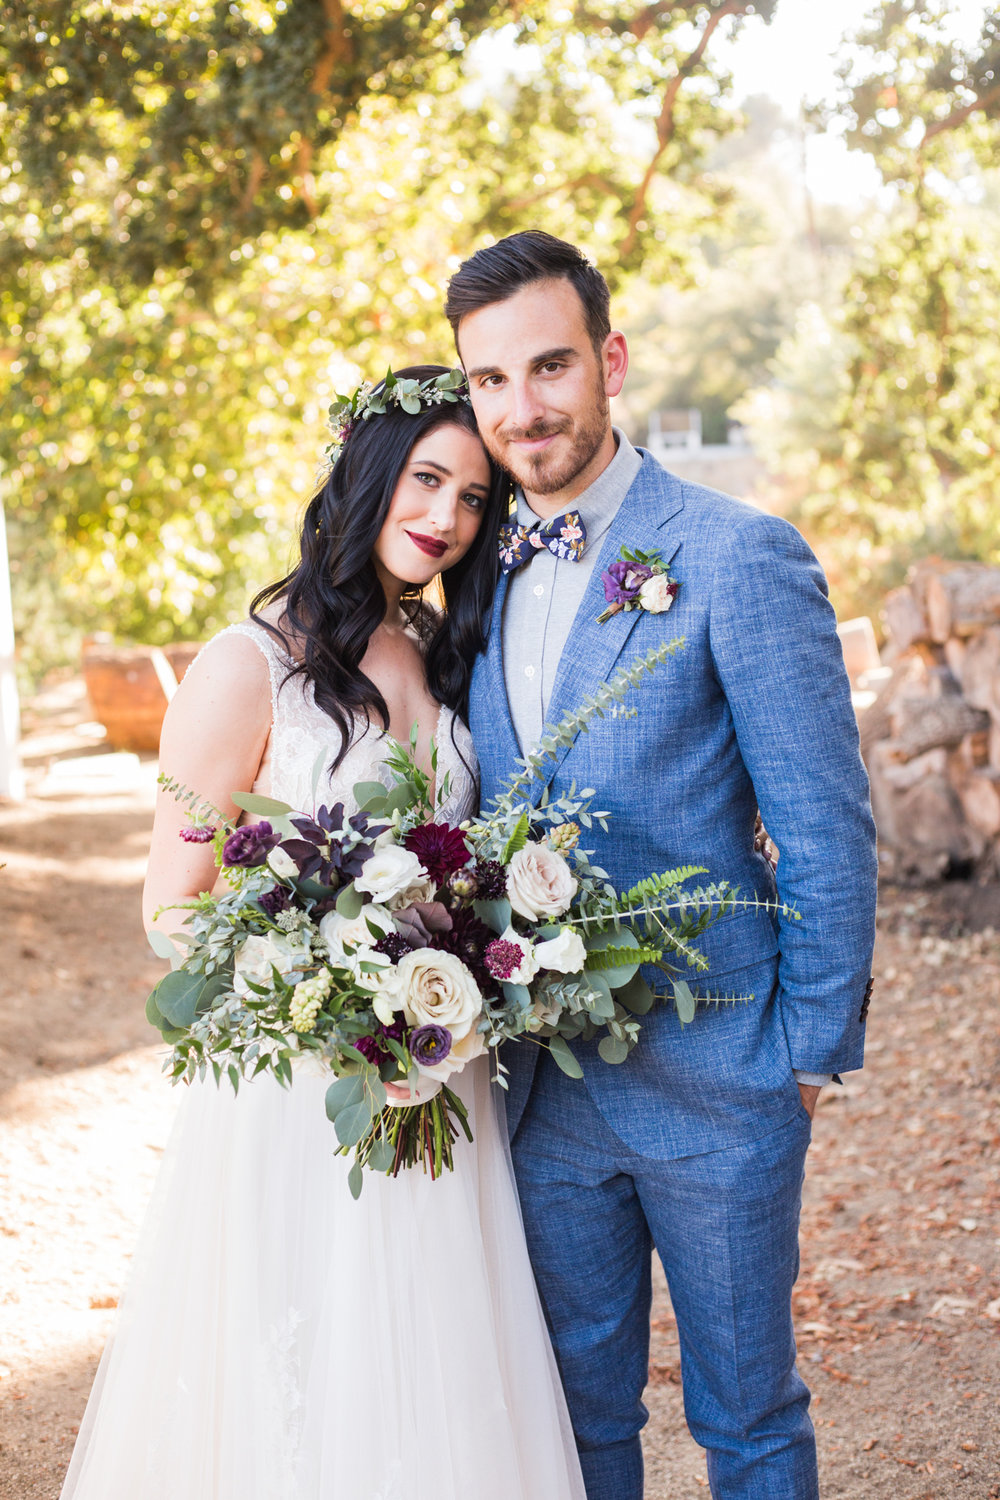 Rustic and Moody bride and groom with dark florals